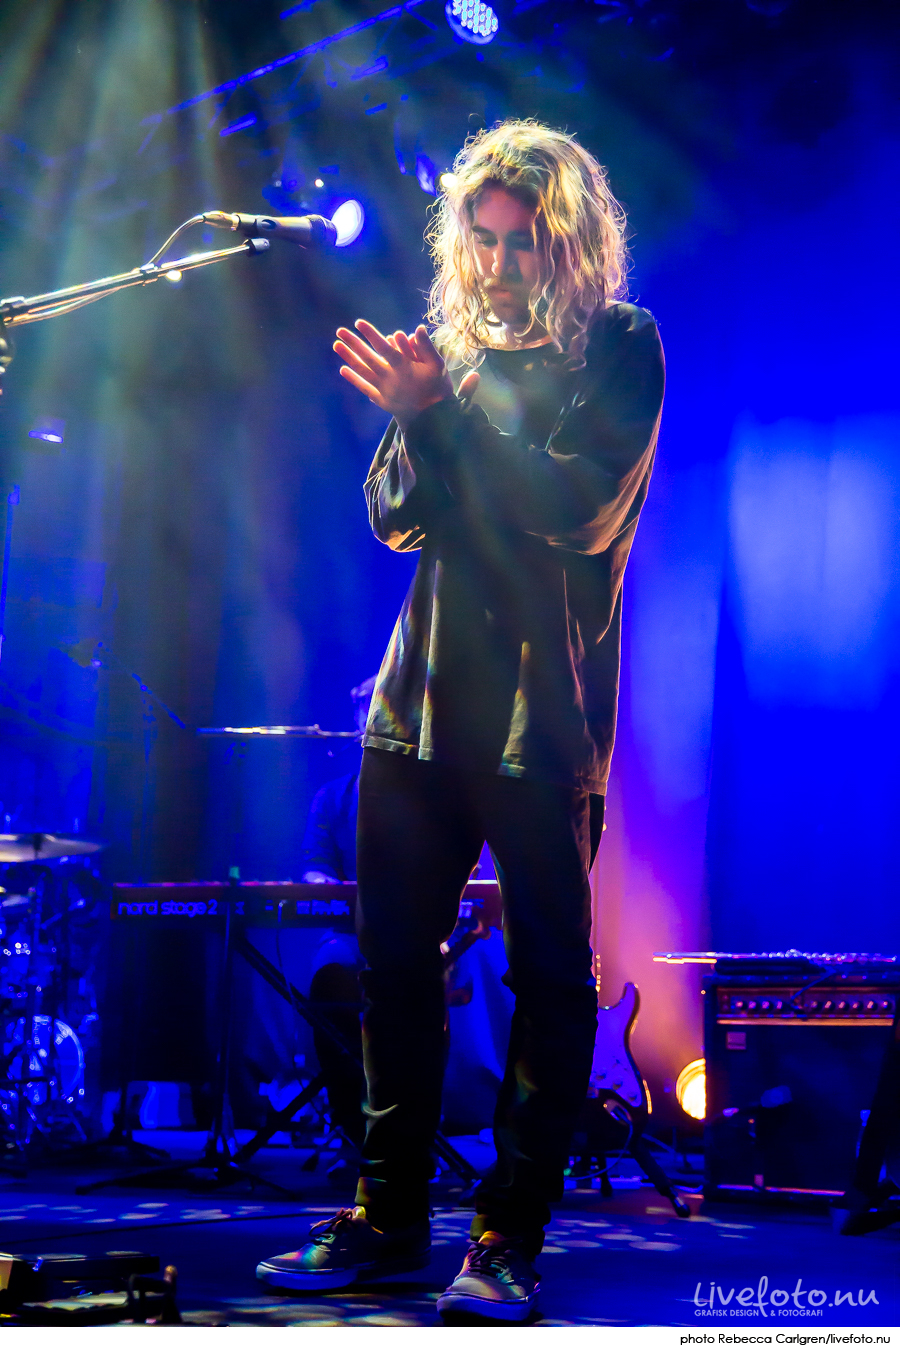 160321-Matt-Corby_photo_Rebecca-Carlgren_livefoto.nu_-15